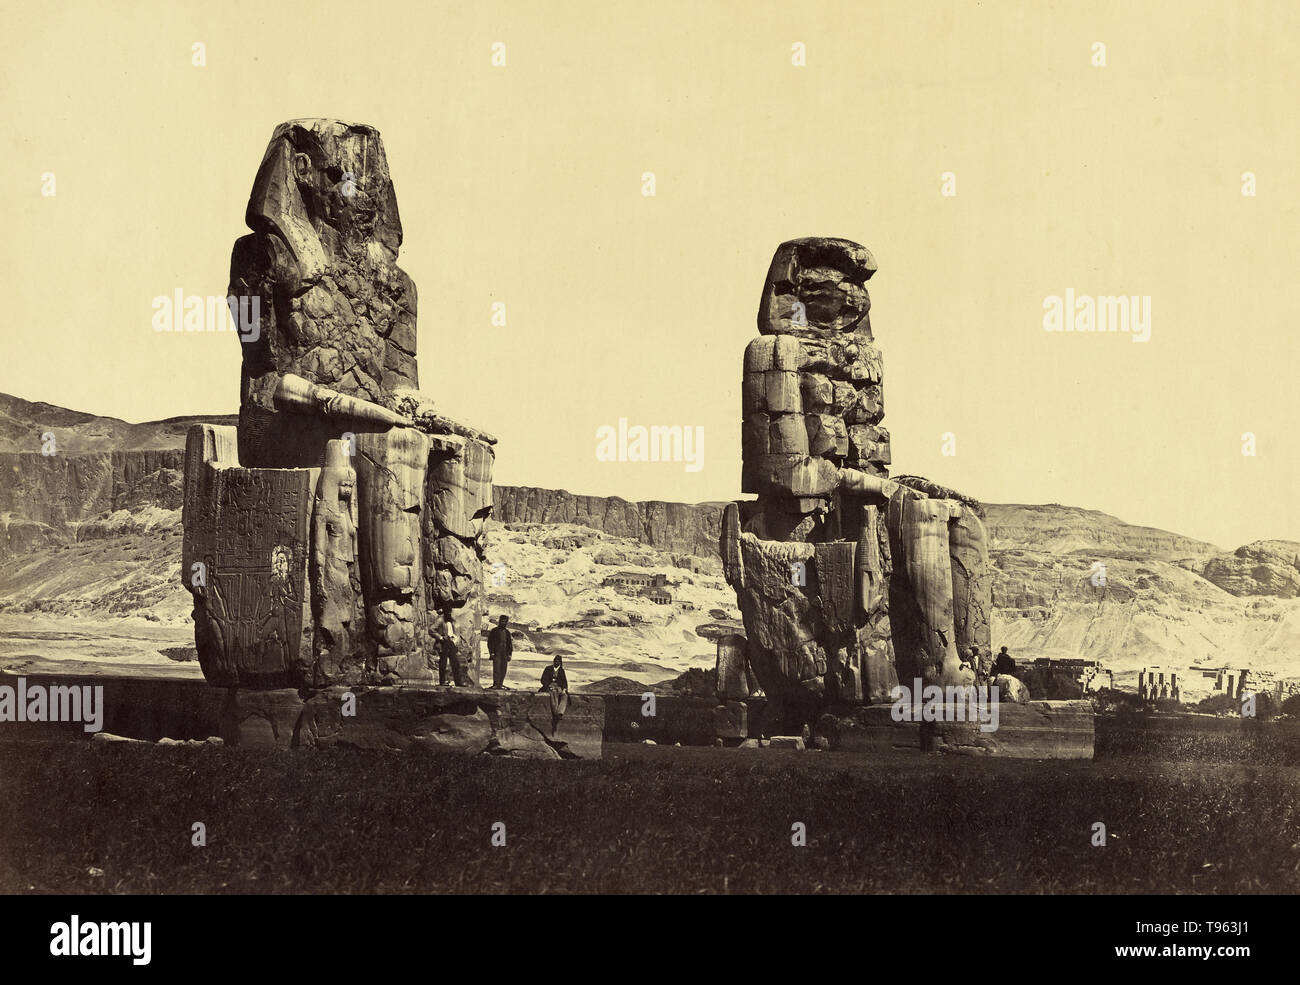 Colossi of Memnon, Thebes, Egypt, c. 1880s. Antonio Beato (English, born Italy, about 1835 - 1906). Albumen silver print. The Colossi of Memnon (Arabic: el-Colossat?? or es-Salamat) are two massive stone statues of the Pharaoh Amenhotep III, who reigned in Egypt during the Dynasty XVIII. For the past 3,400 years (since 1350 BC), they have stood in the Theban Necropolis, located west of the River Nile from the modern city of Luxor. Stock Photo